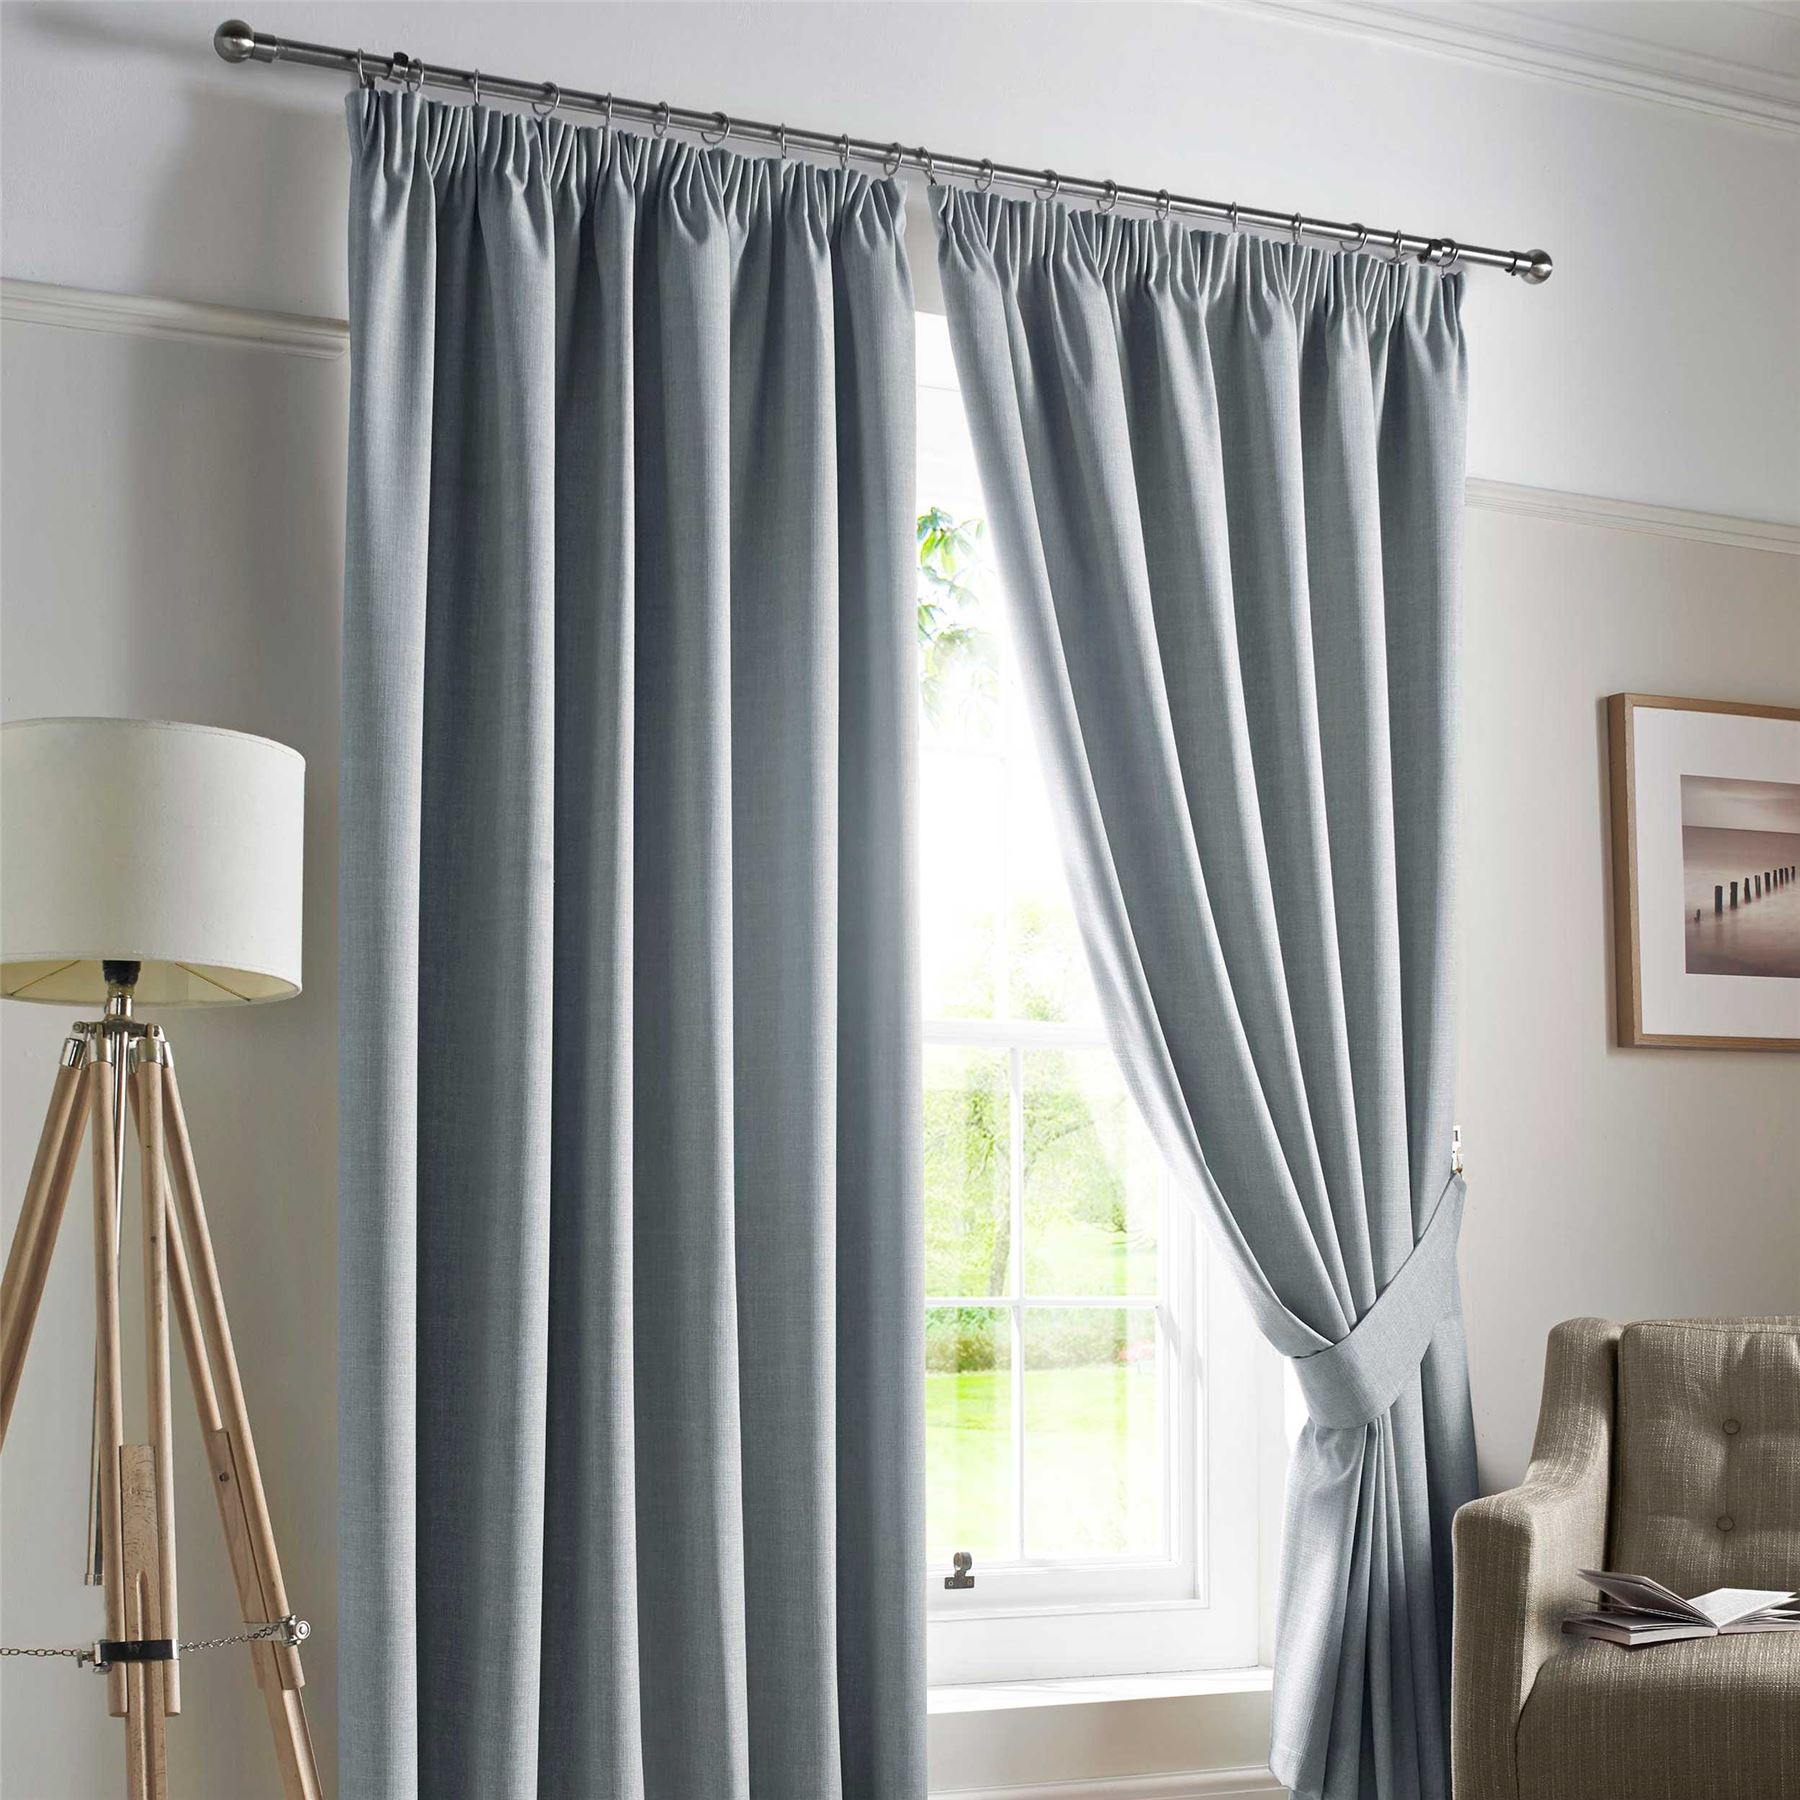 pencil pleat blackout ready made curtains pair fully lined. Black Bedroom Furniture Sets. Home Design Ideas